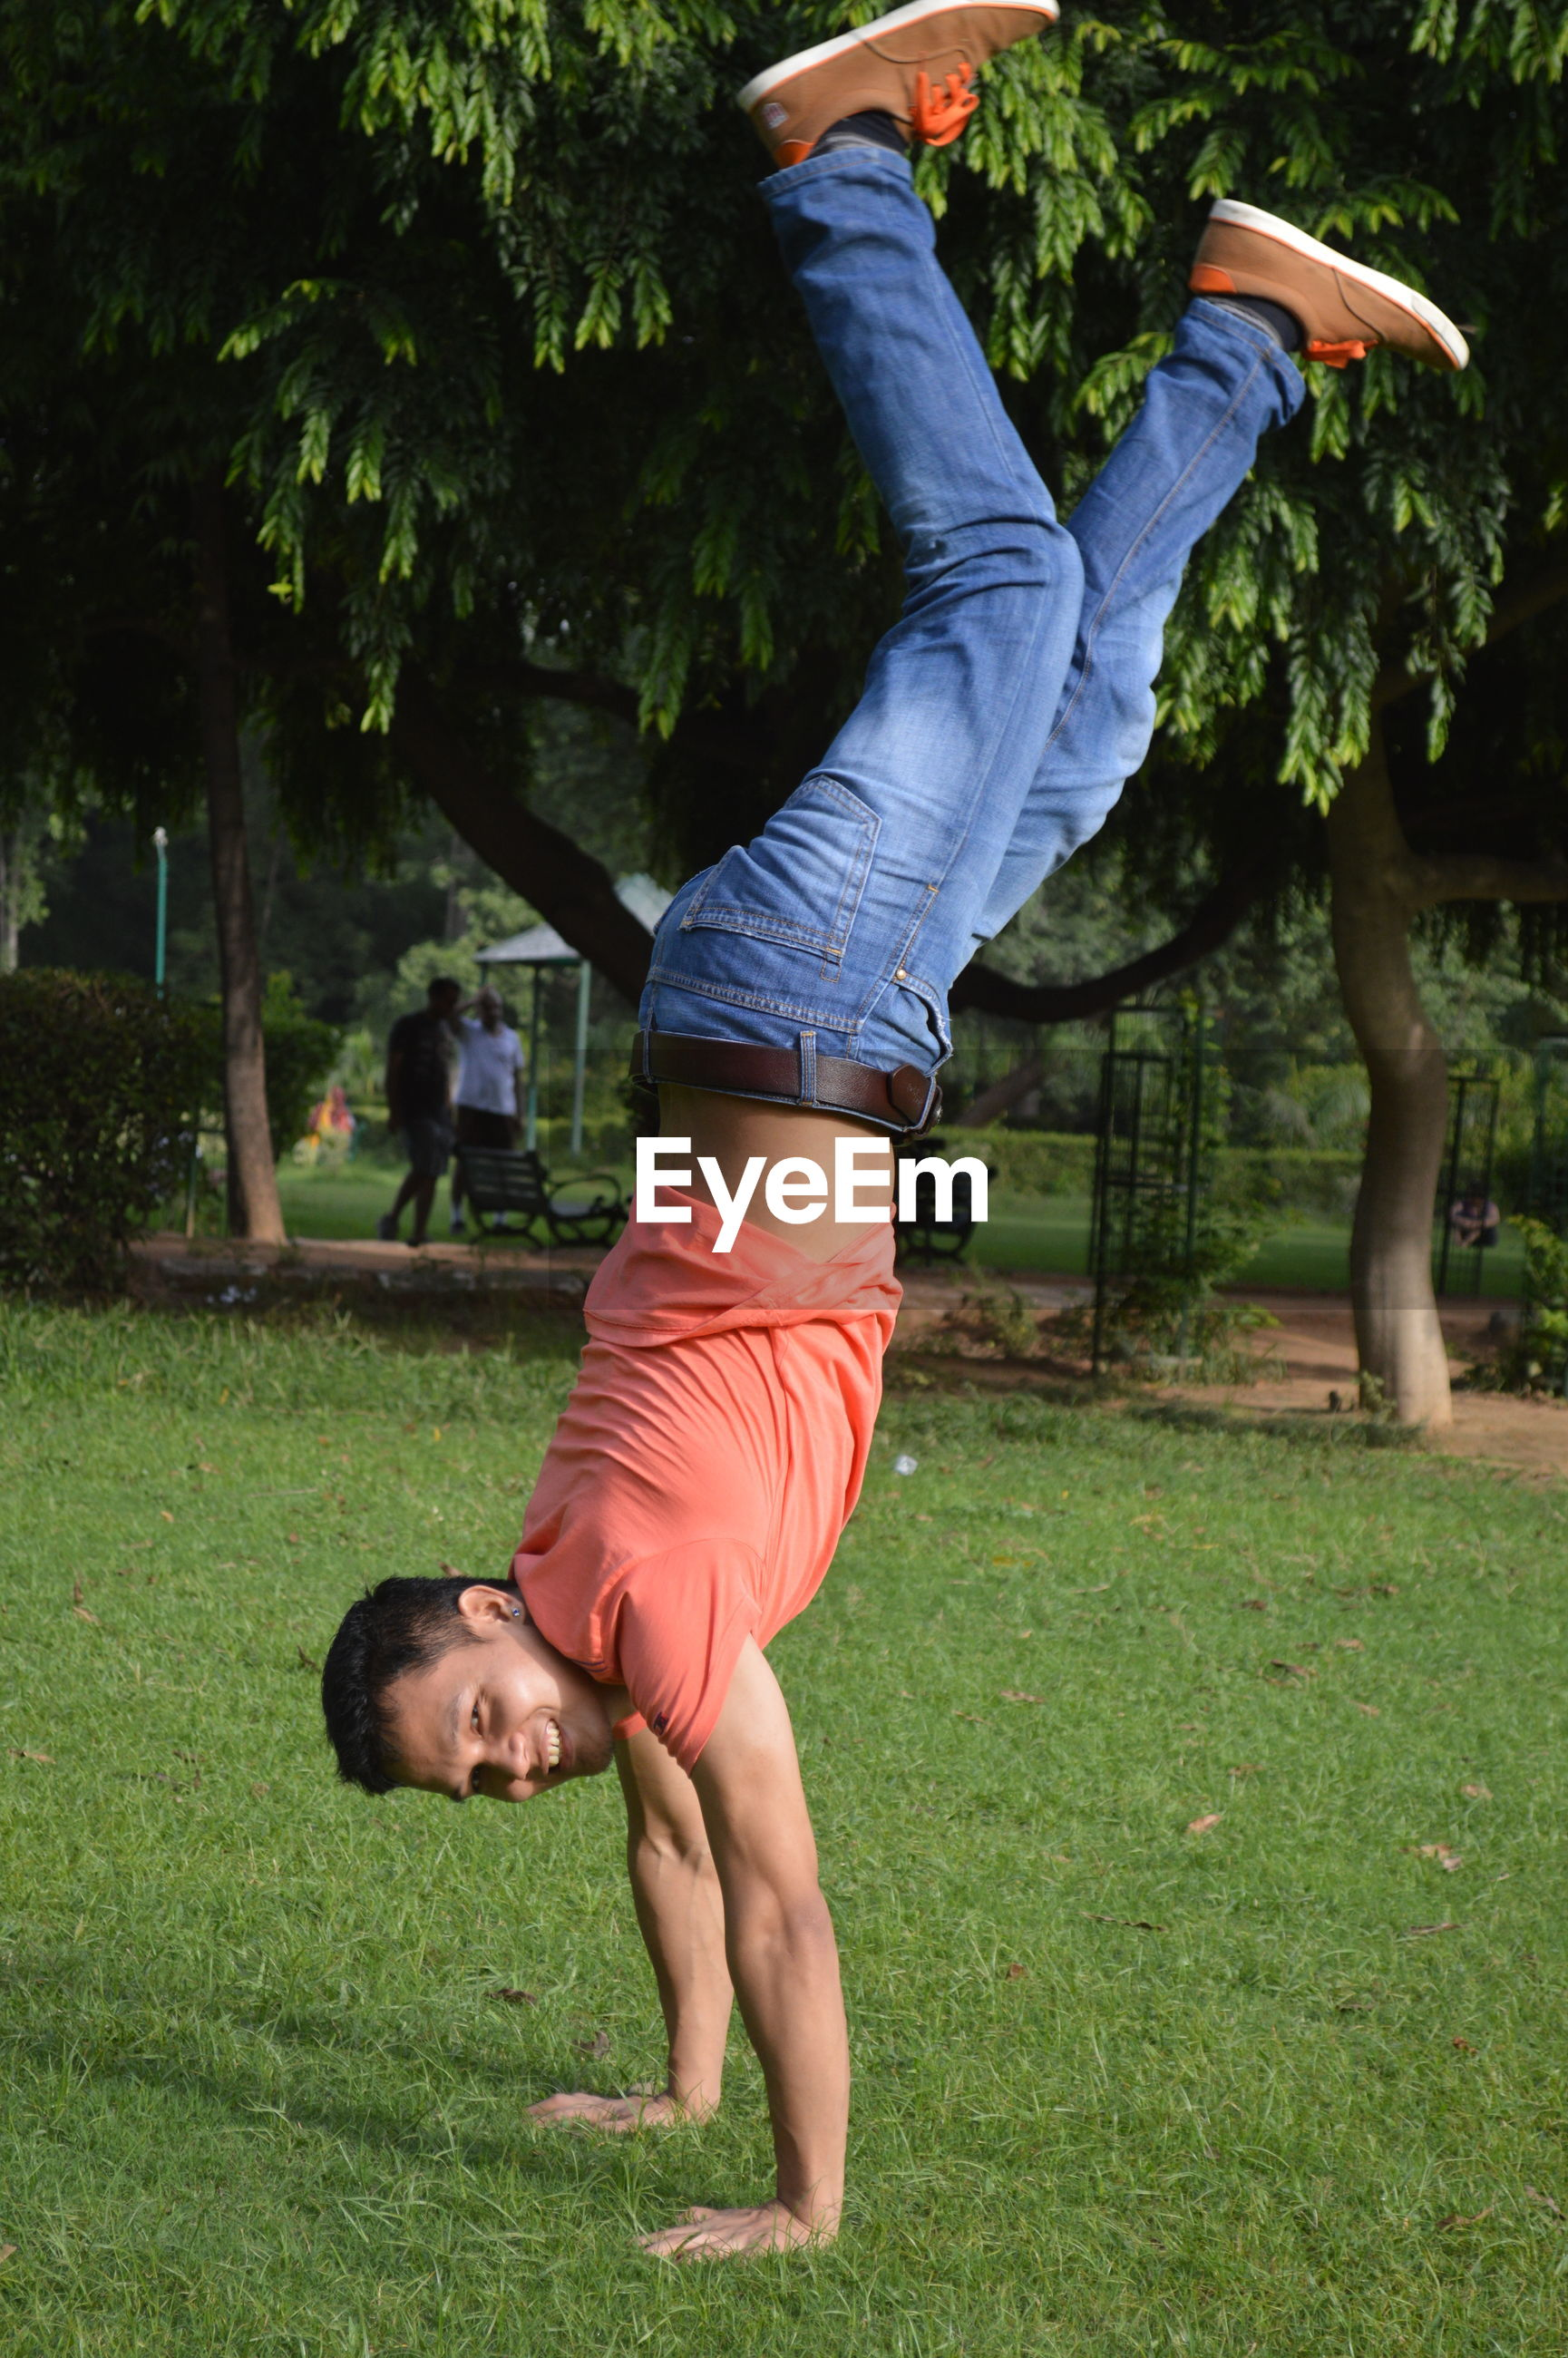 Side view of man doing handstand on grassy field in park